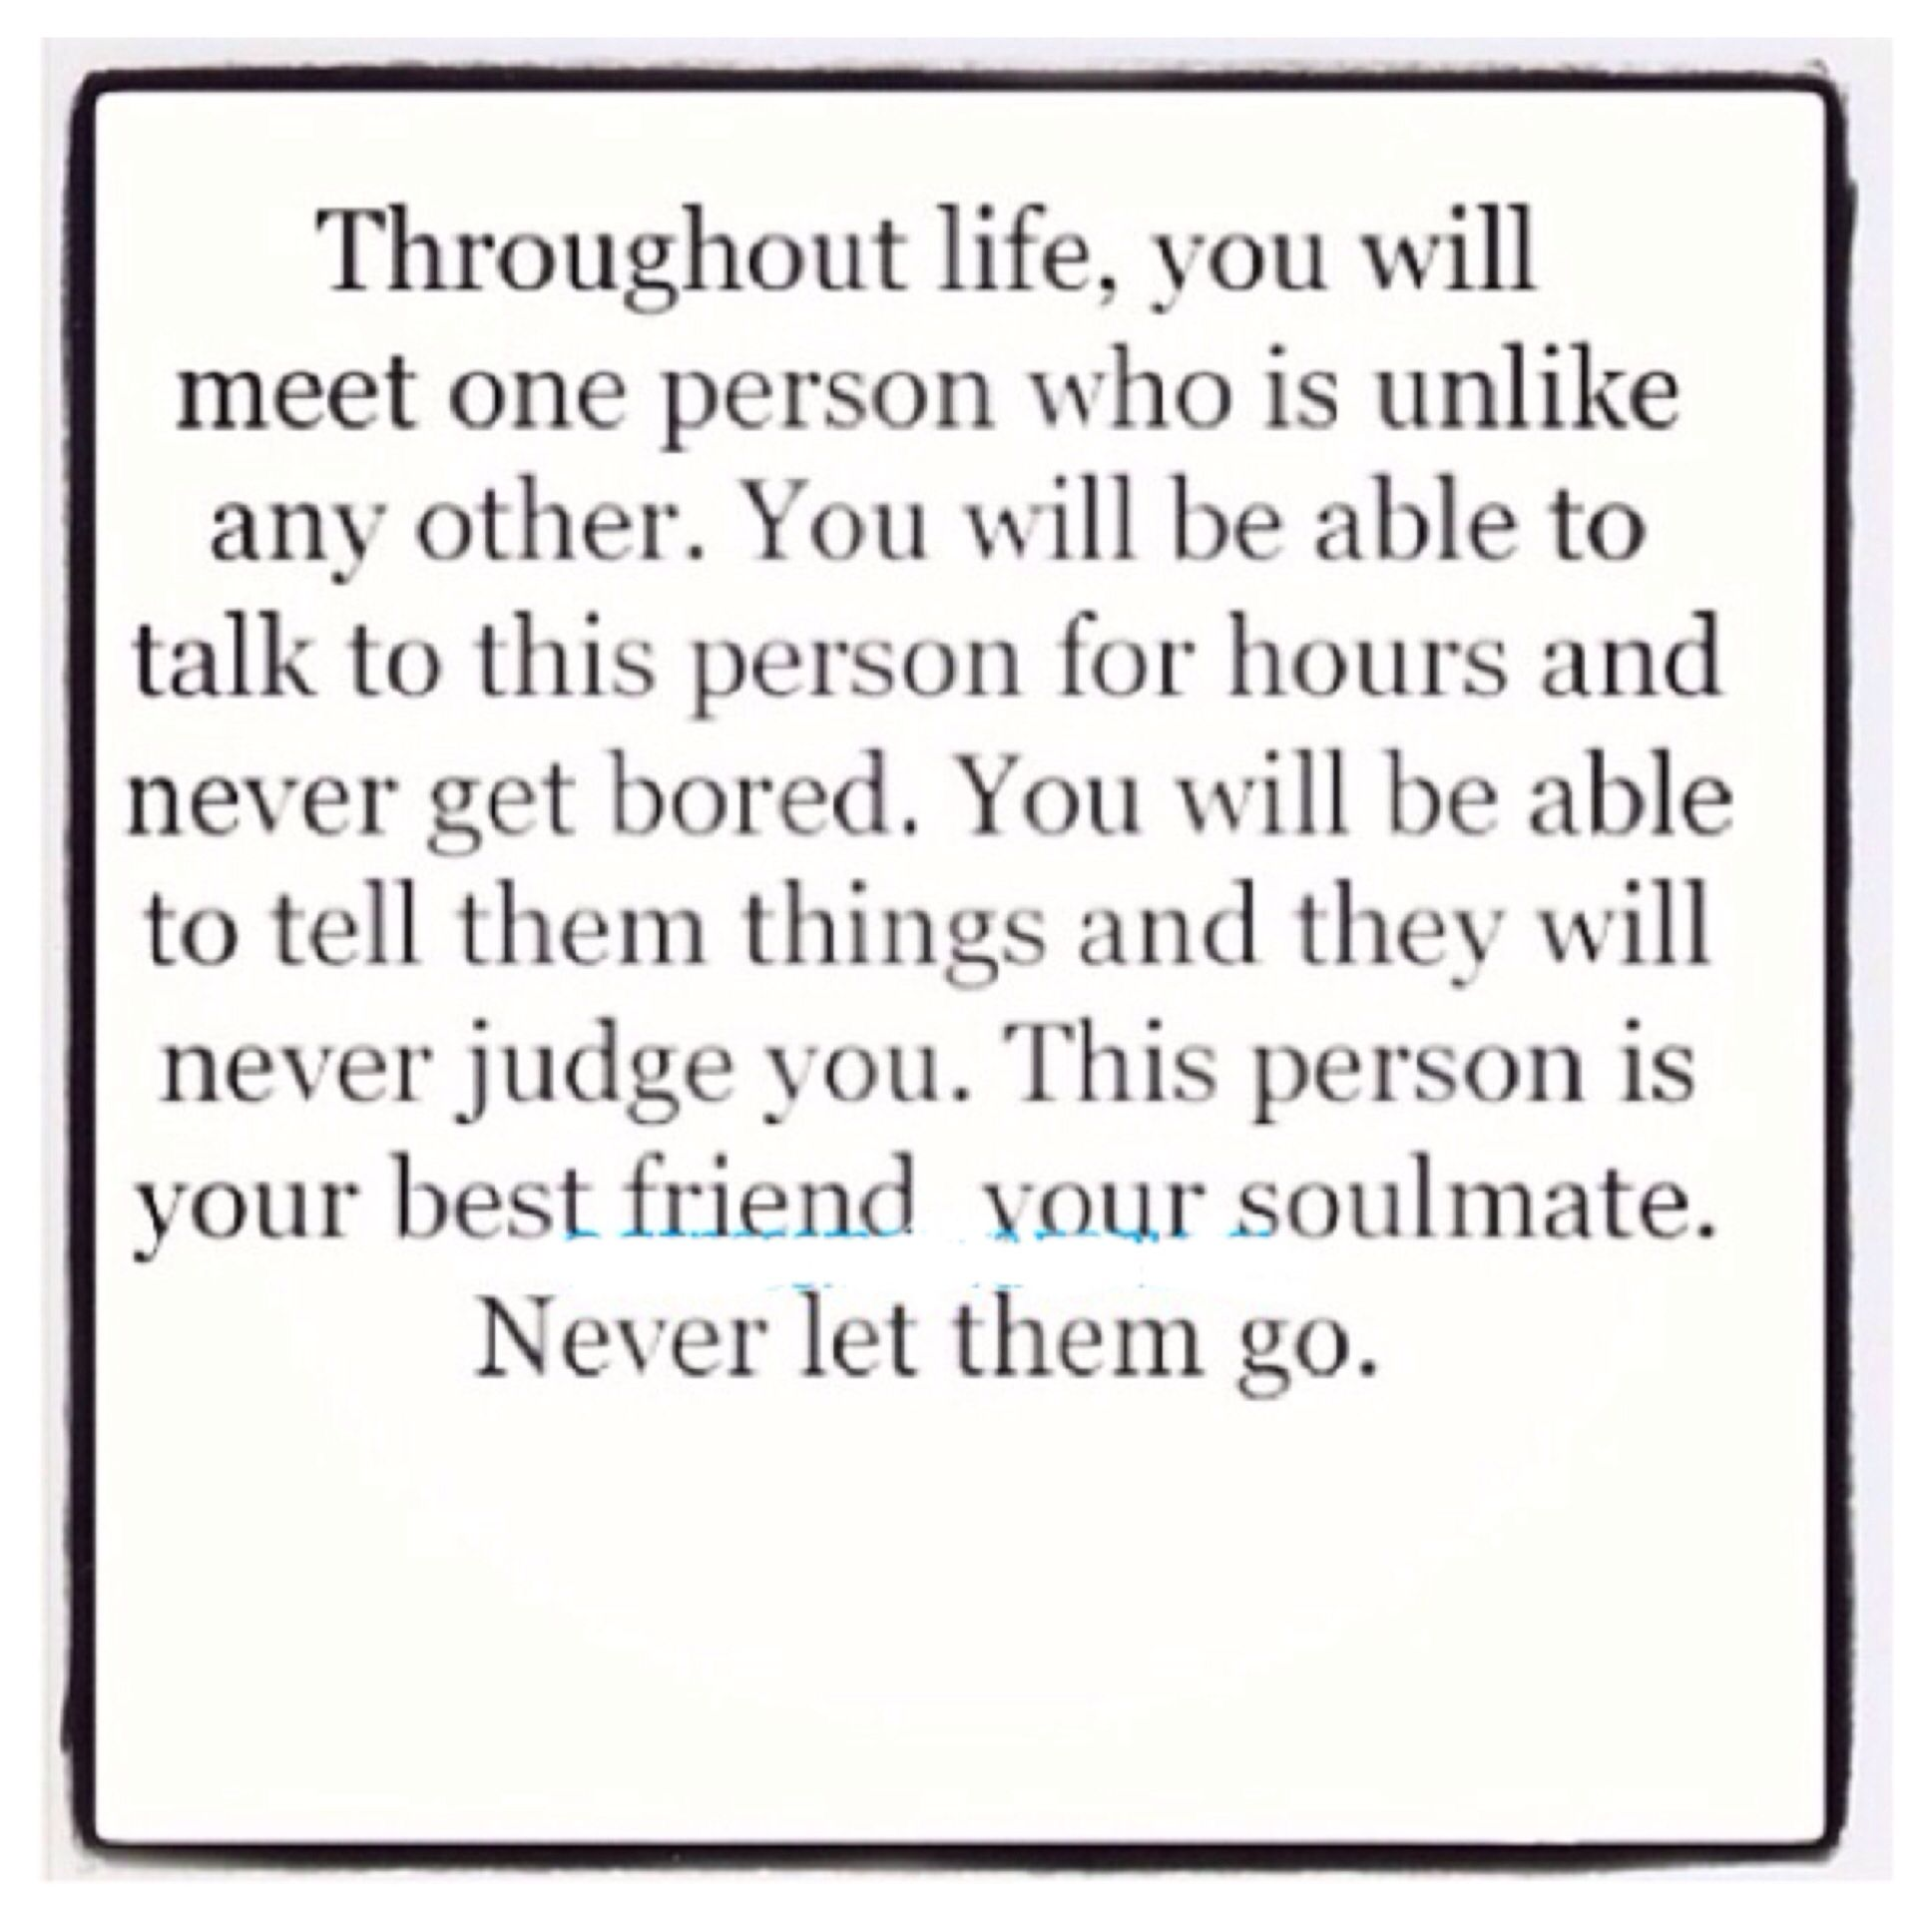 Best friend/soulmate | Quotes | Pinterest | Relationships ...